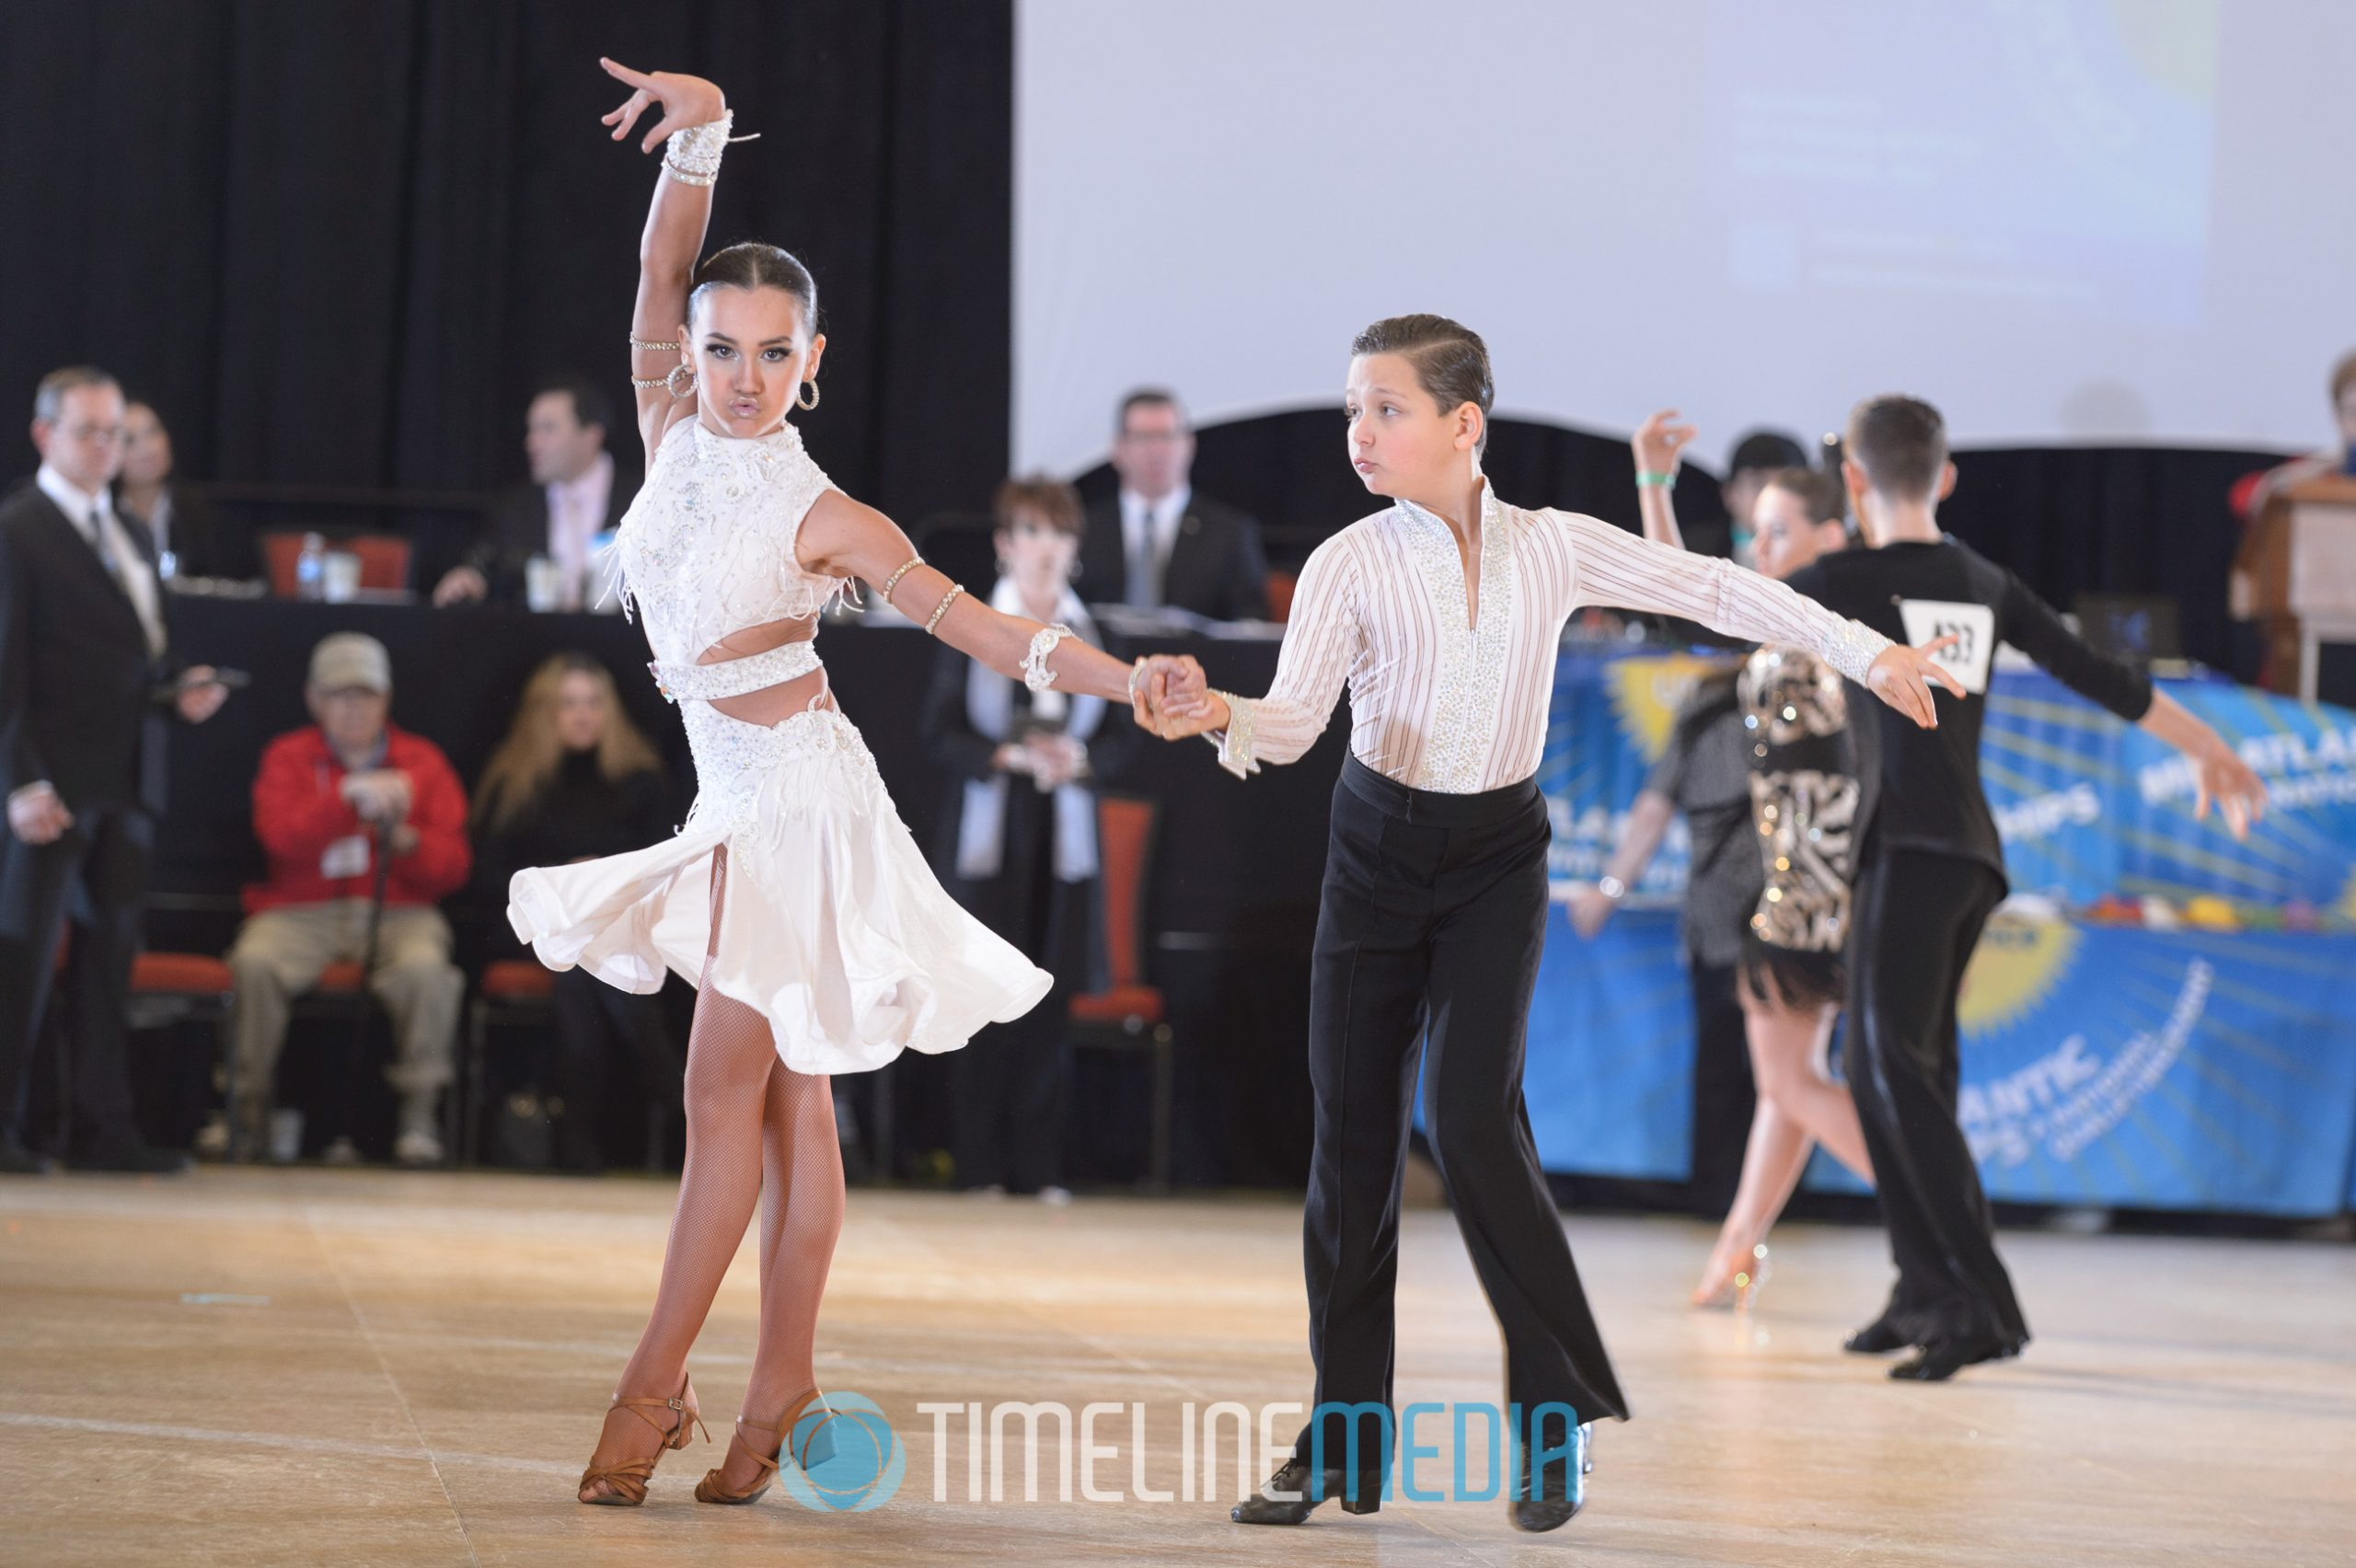 Youth dancers at the Mid-Atlantic Championships ©TimeLine Media